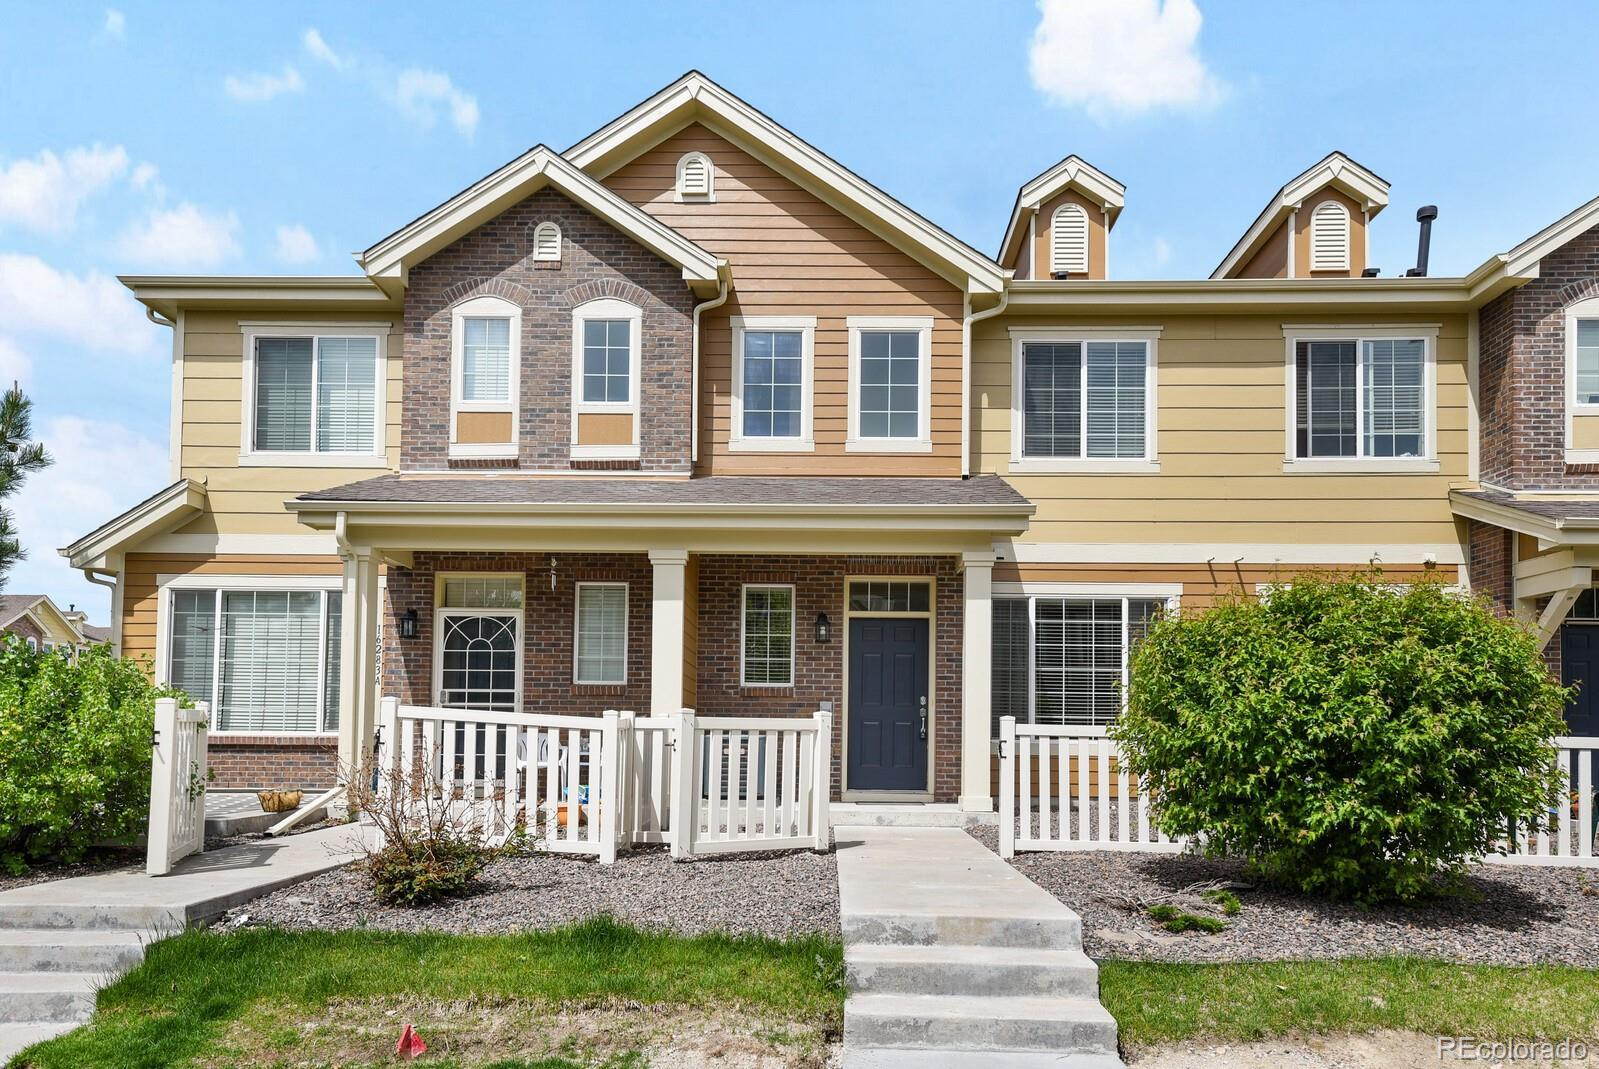 16283 W 63rd Place #B, Arvada, CO 80403 - #: 3806489